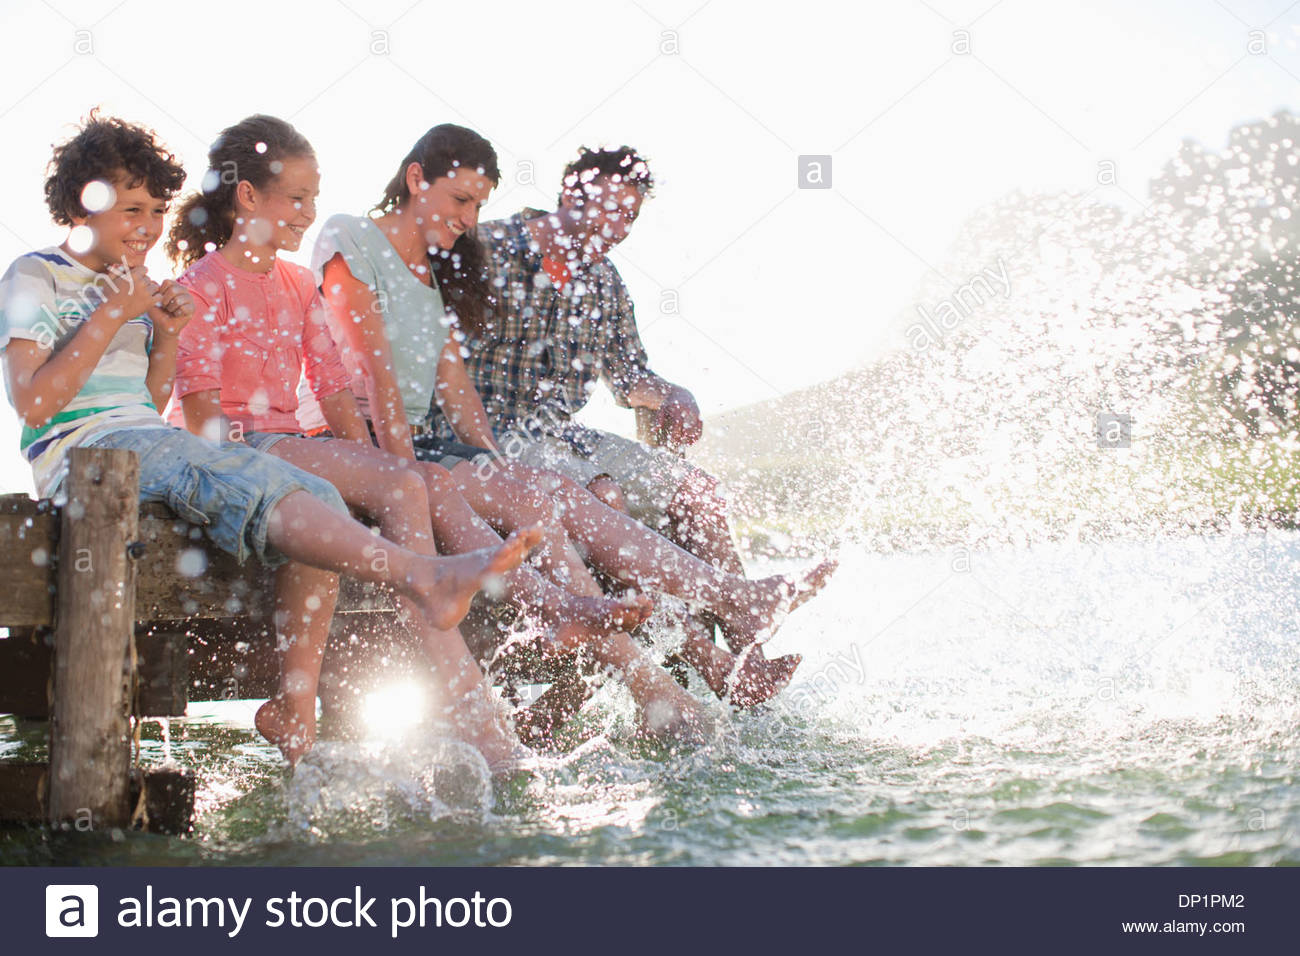 Family on dock splashing feet in lake - Stock Image